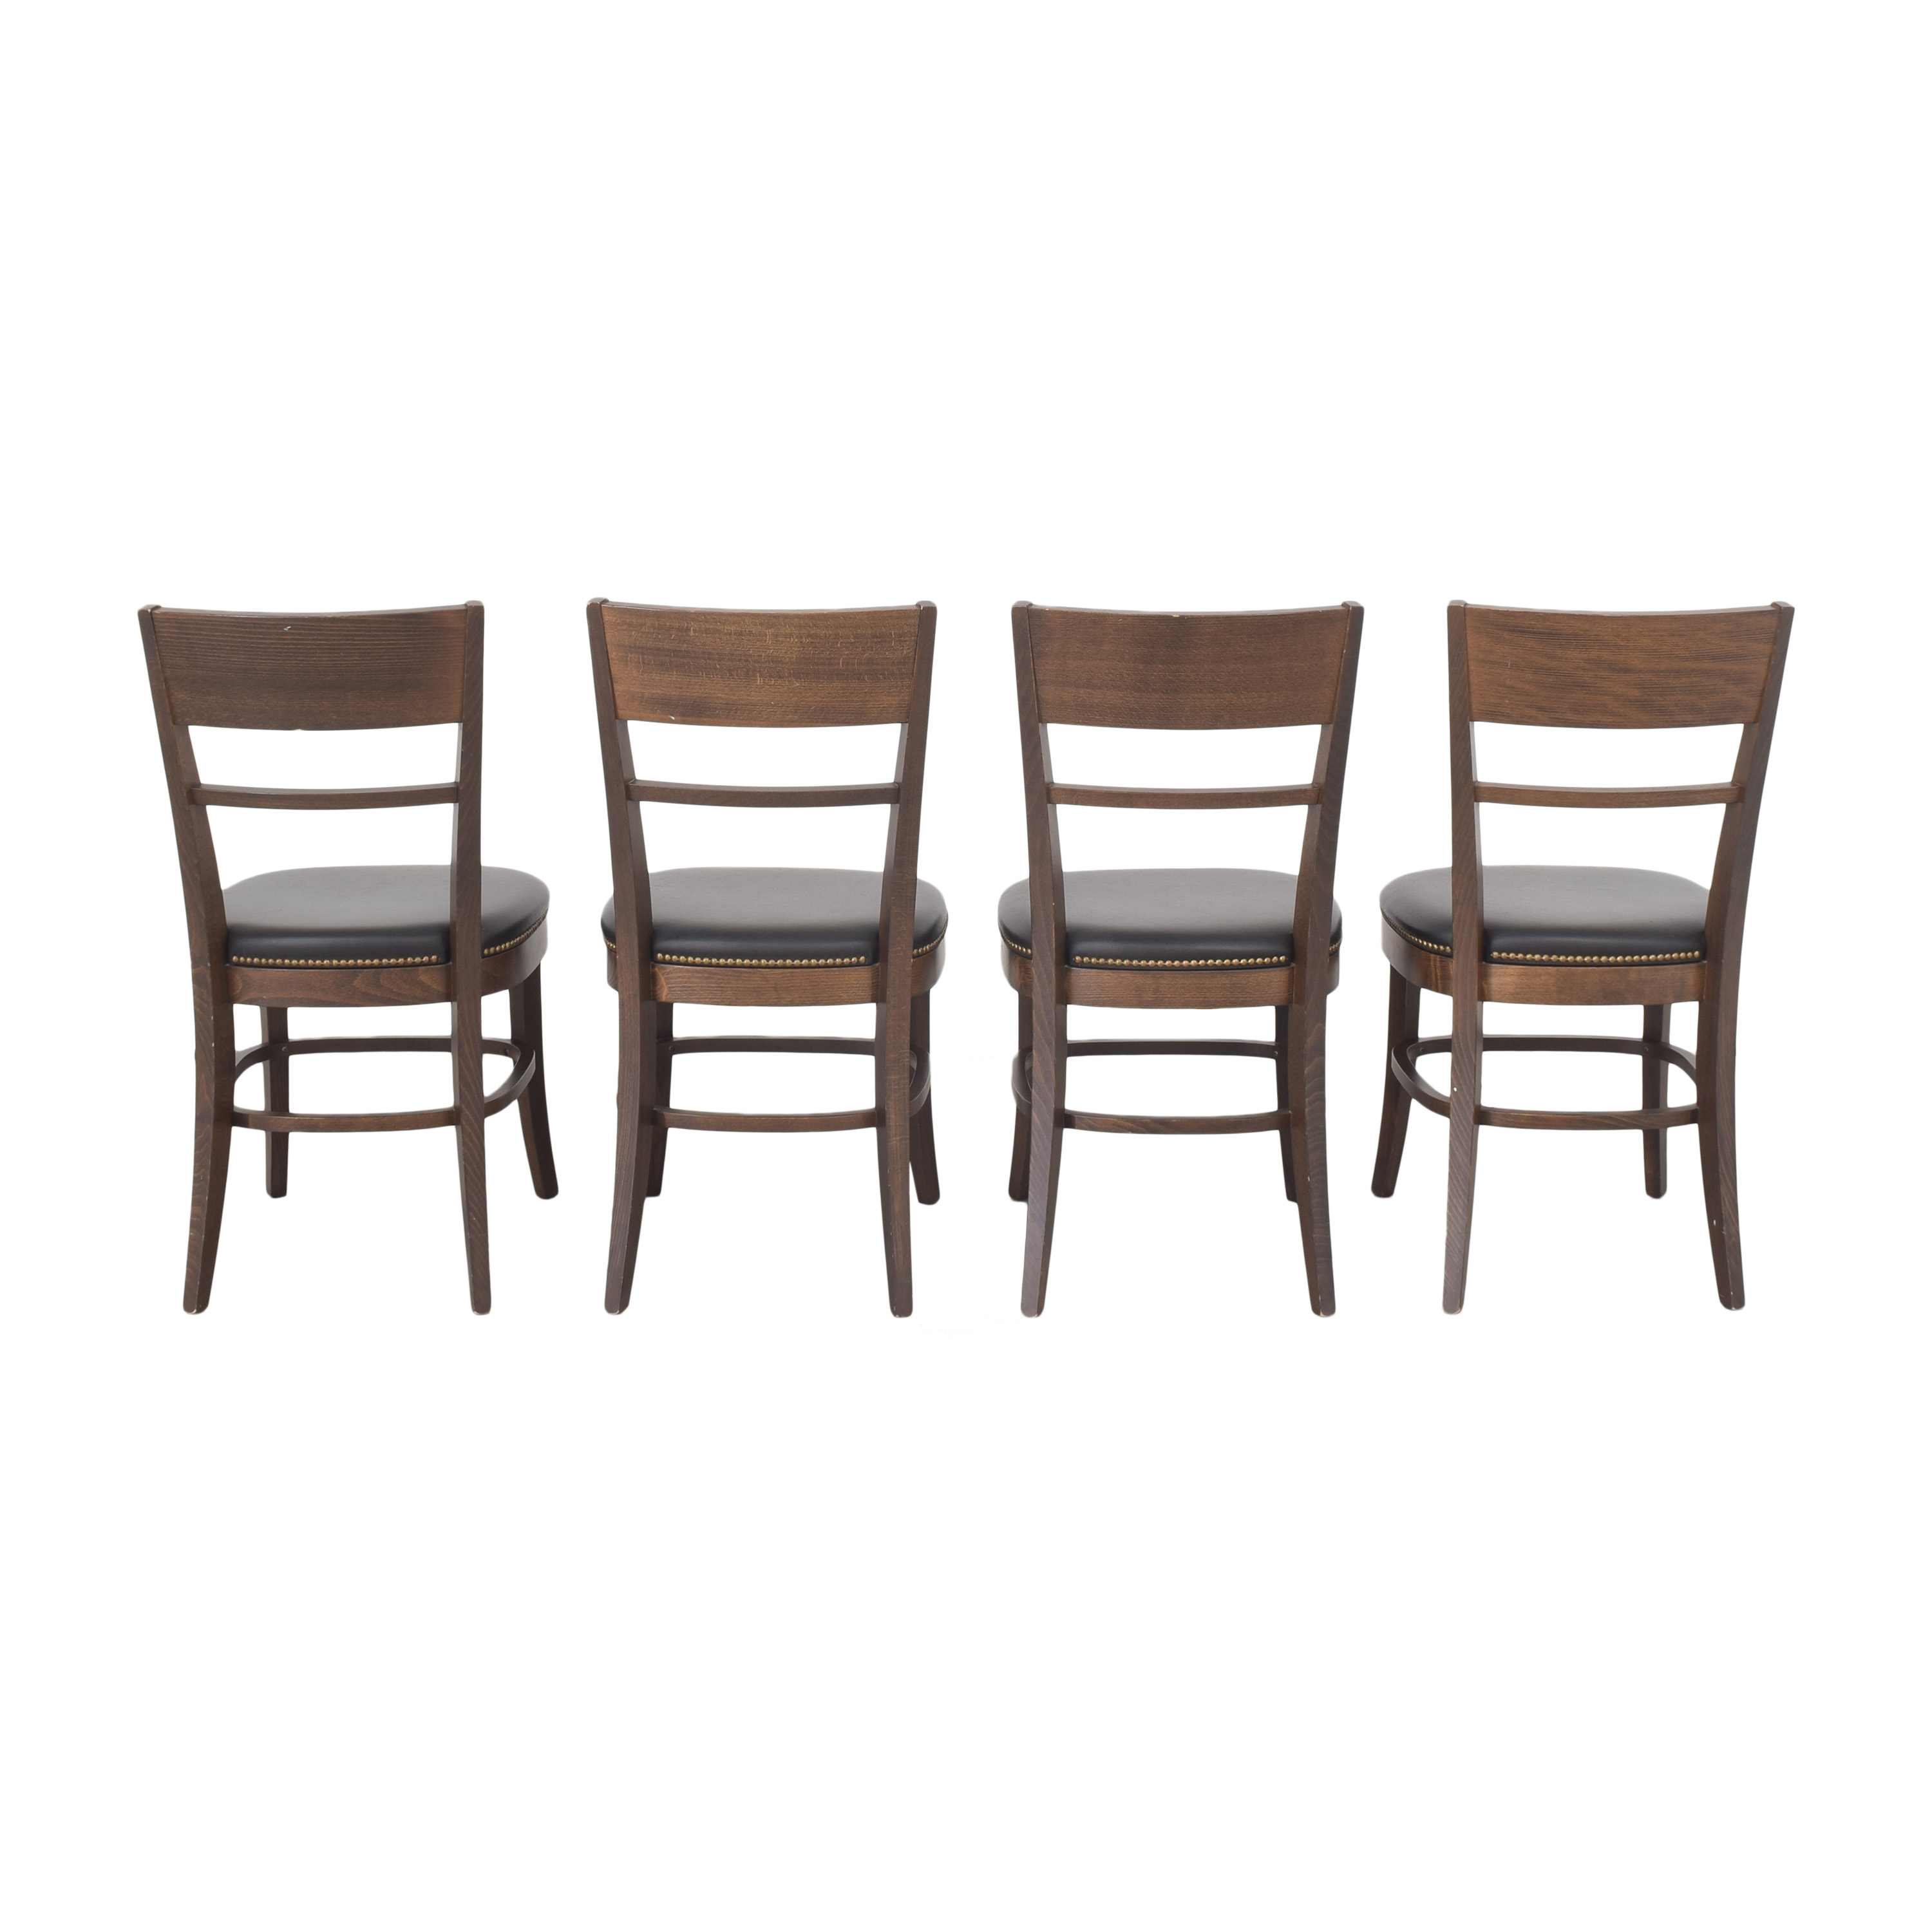 Pottery Barn Pottery Barn Nailhead Dining Chairs on sale